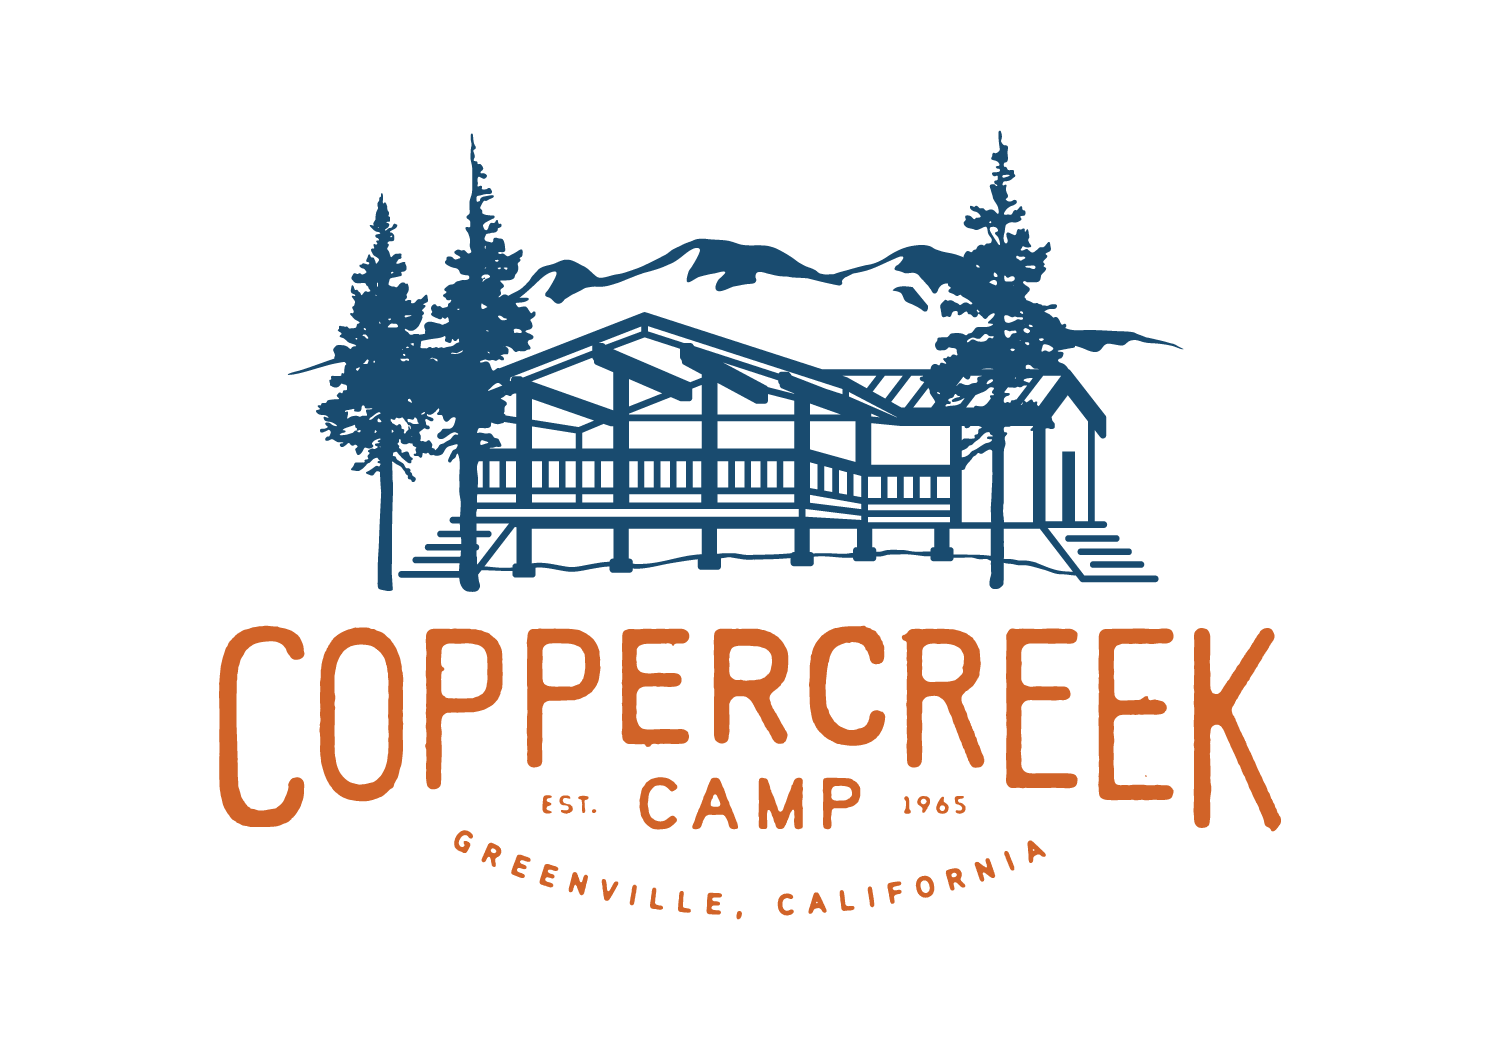 Coppercreek Camp